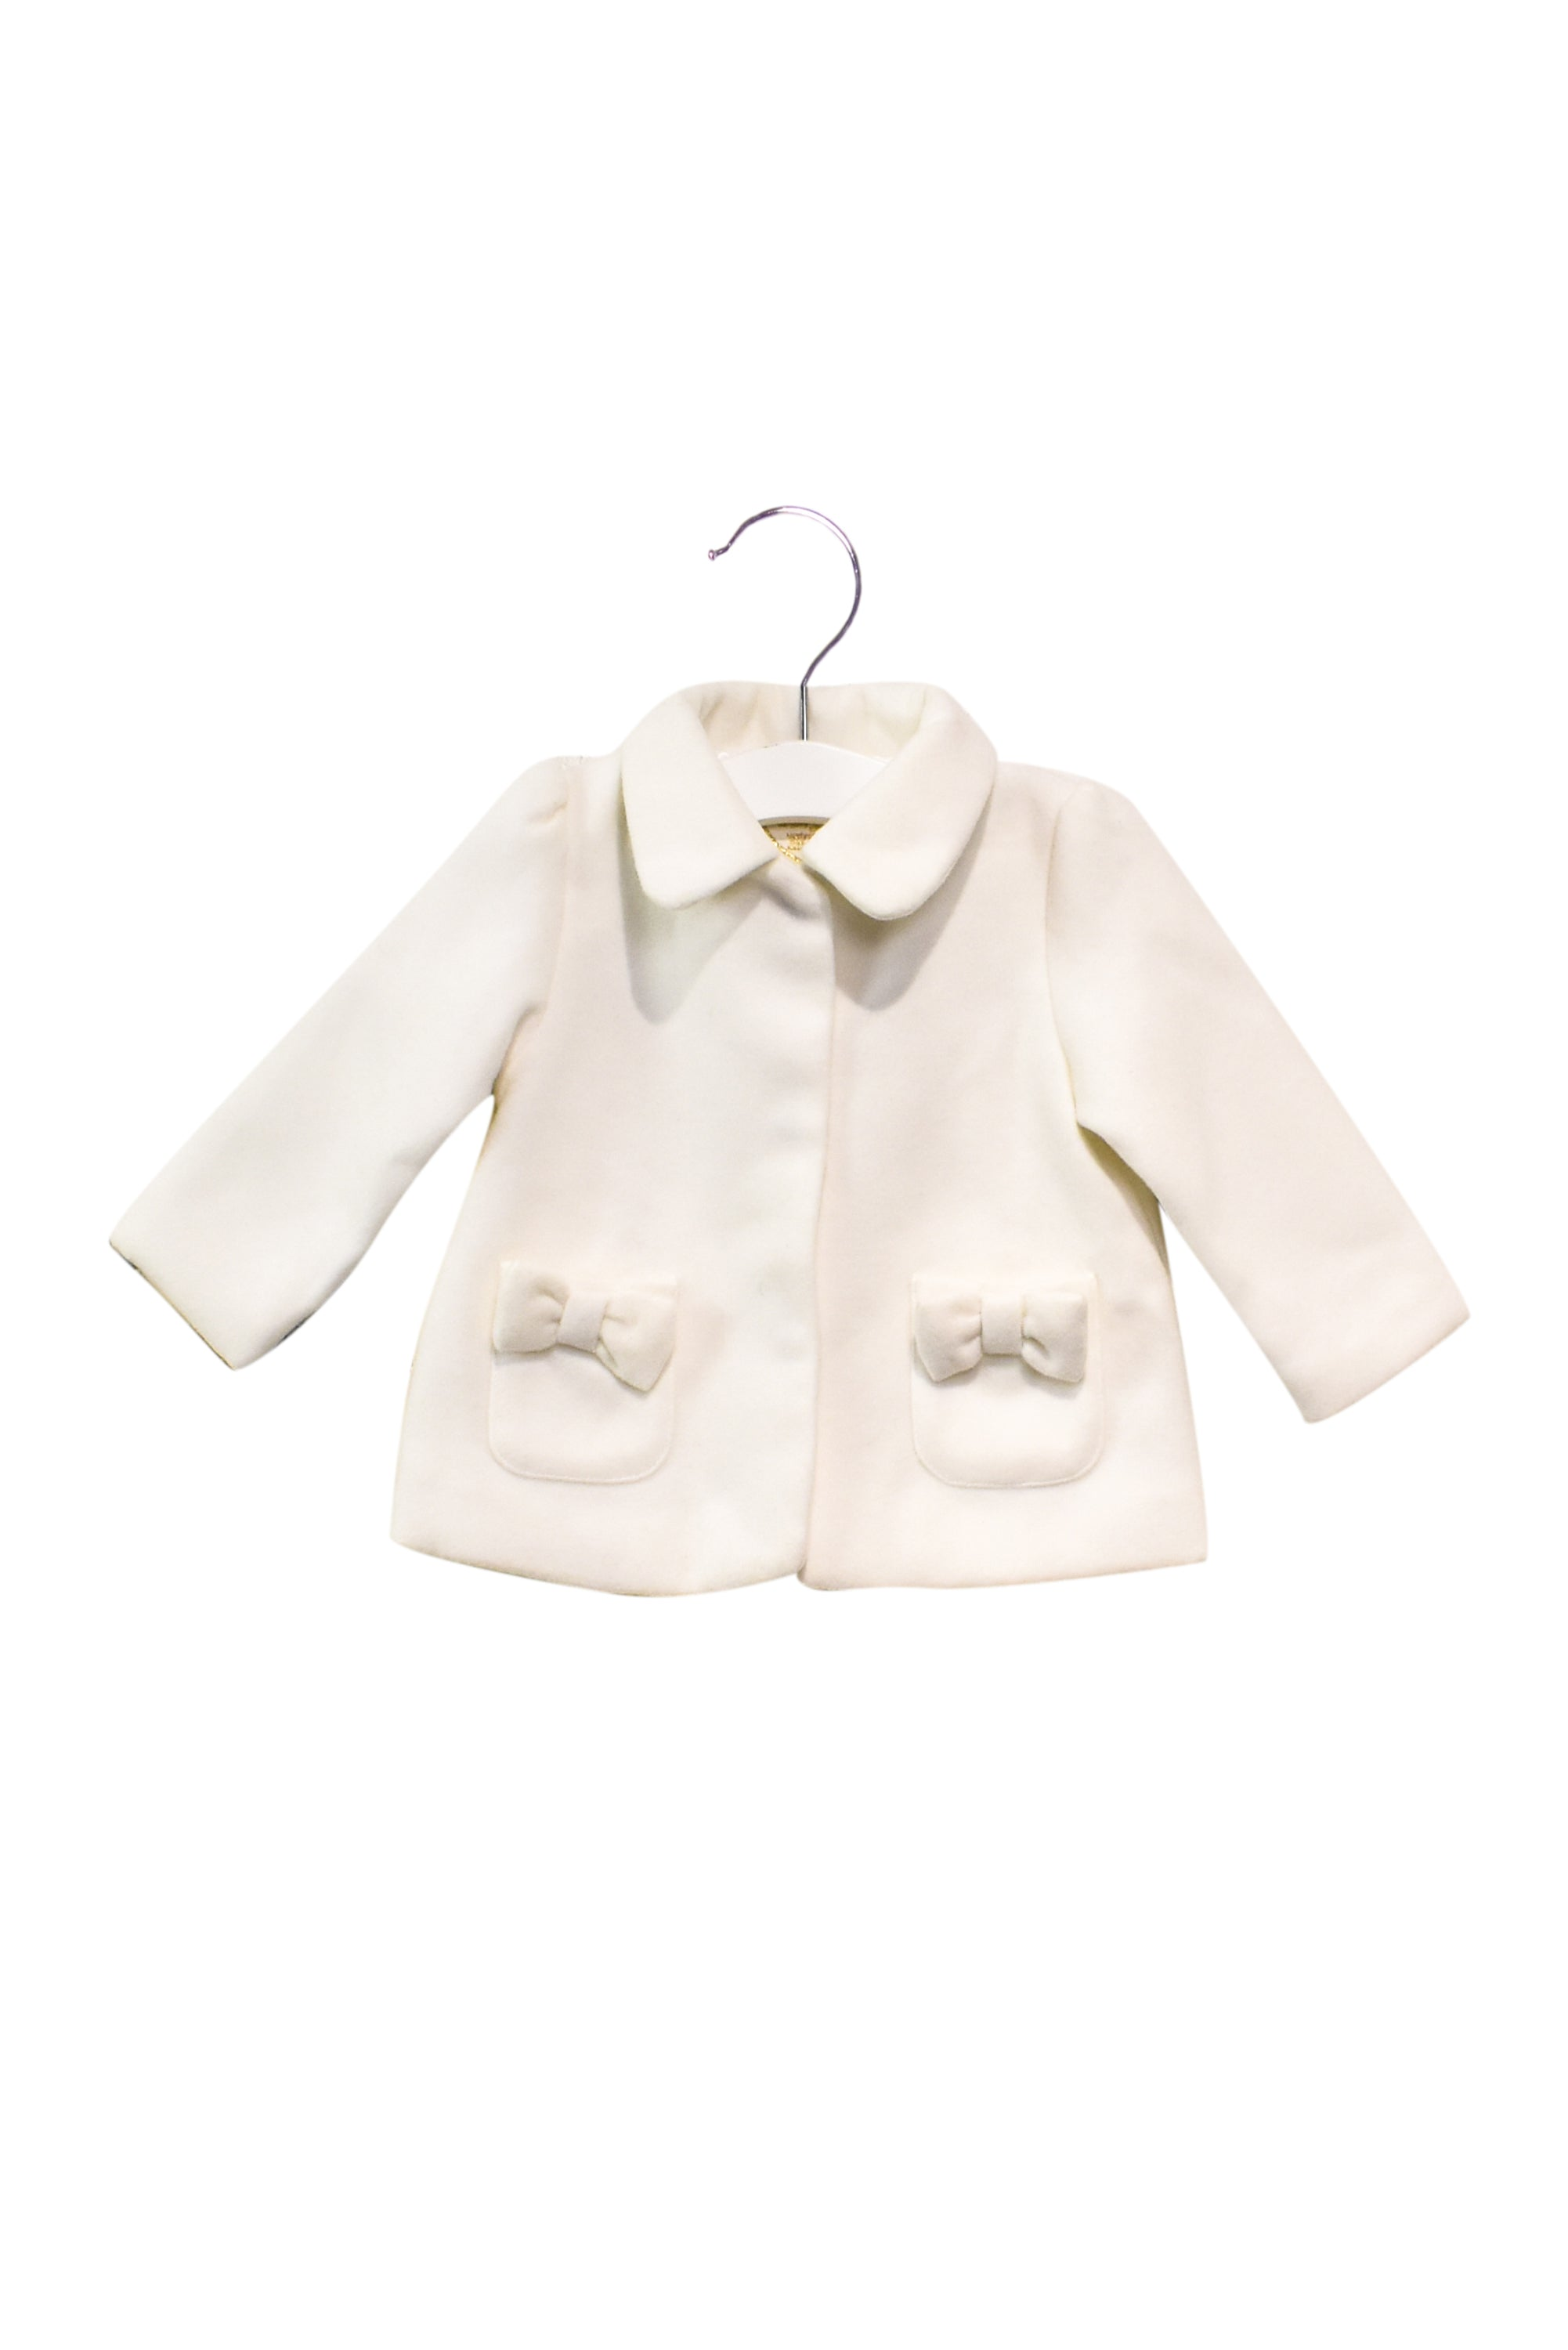 10028140 Early Days Baby~Coat 6-9M at Retykle